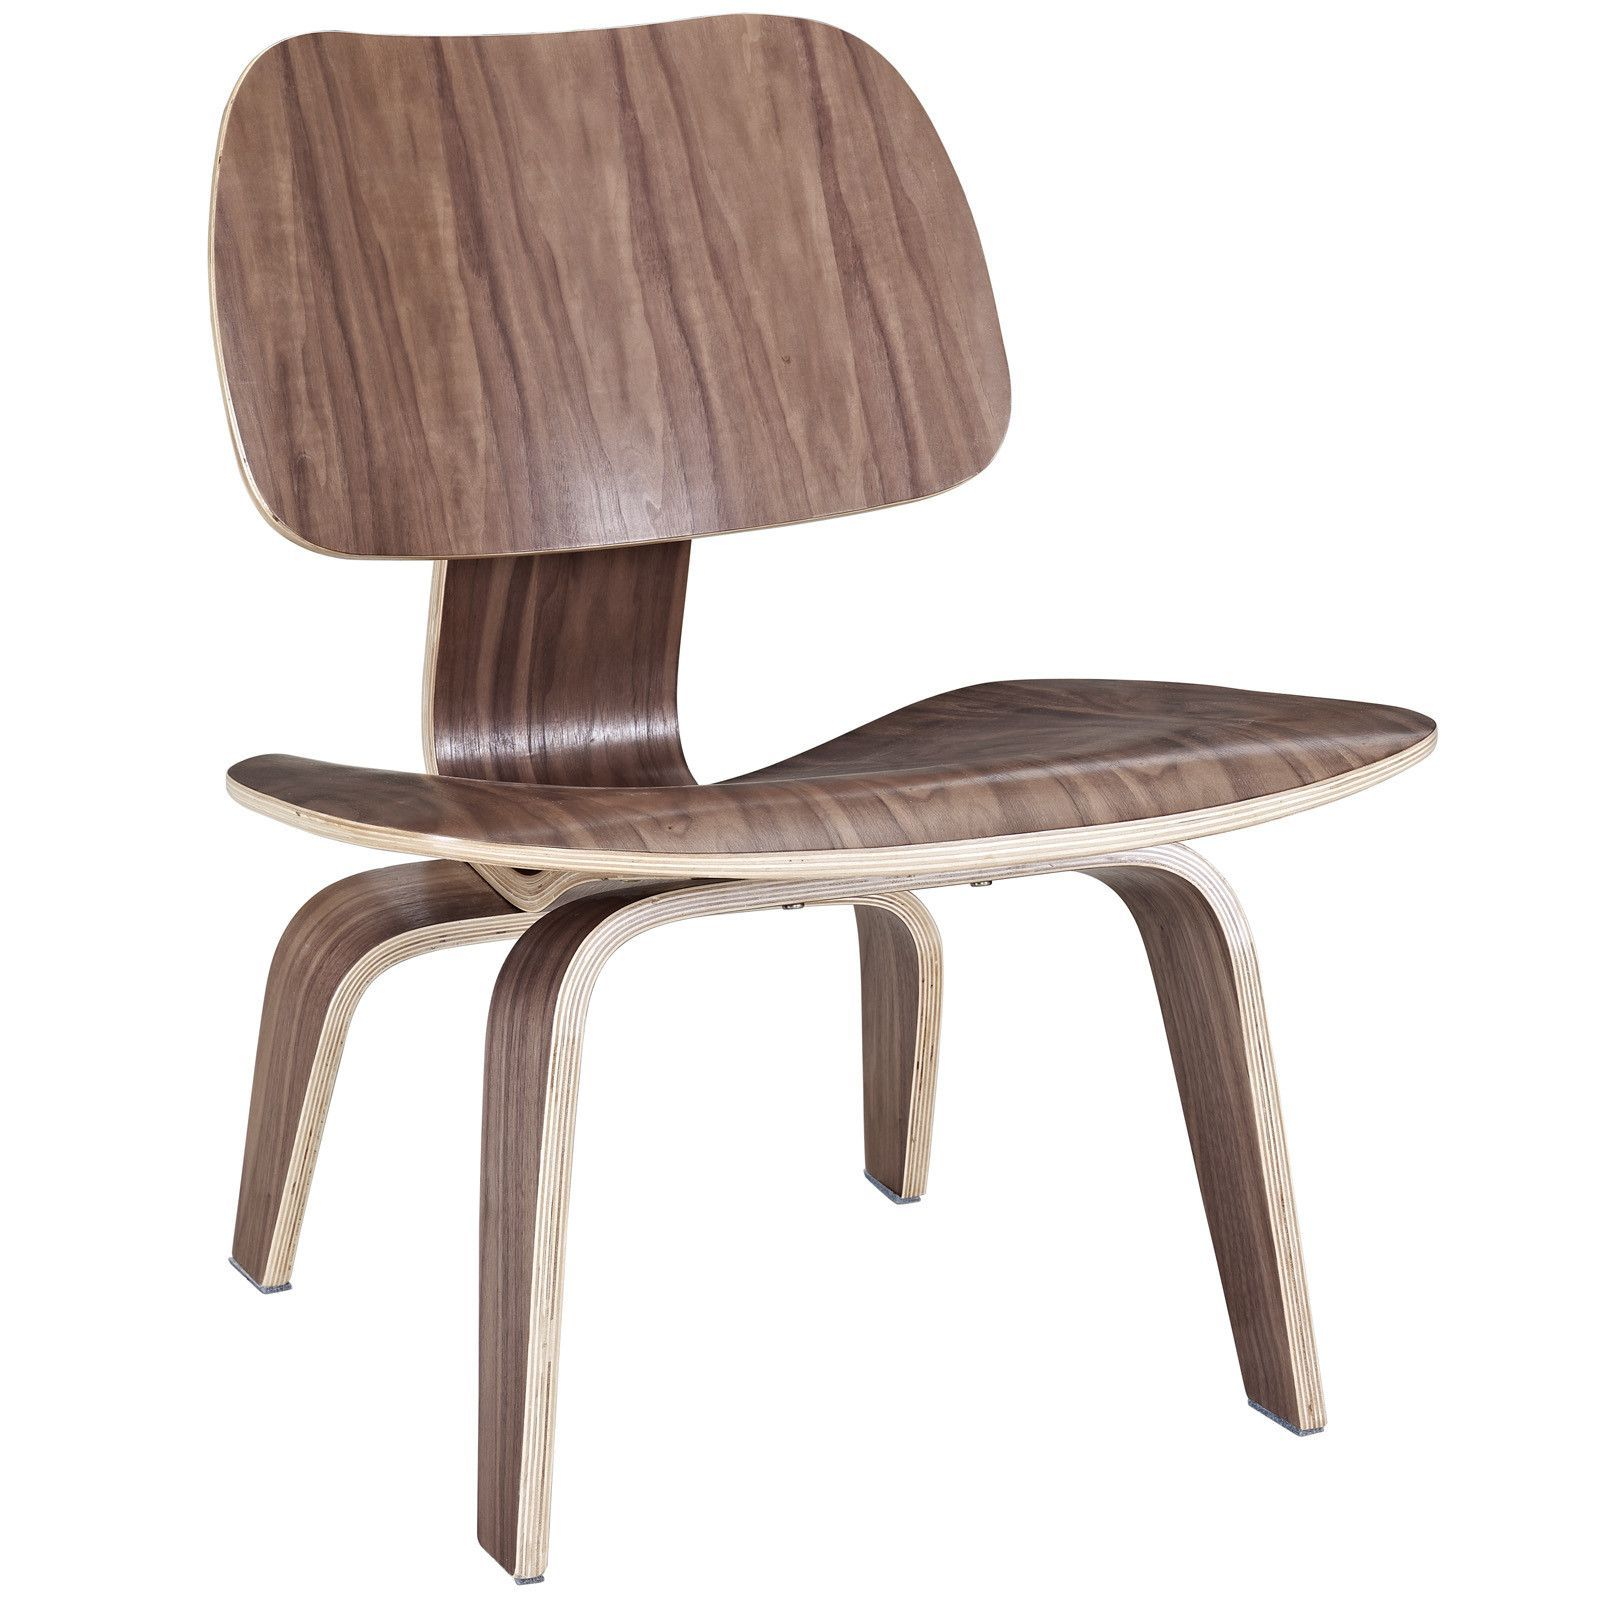 Bent Plywood Chair Eames - Eames inspired molded plywood lounge chair